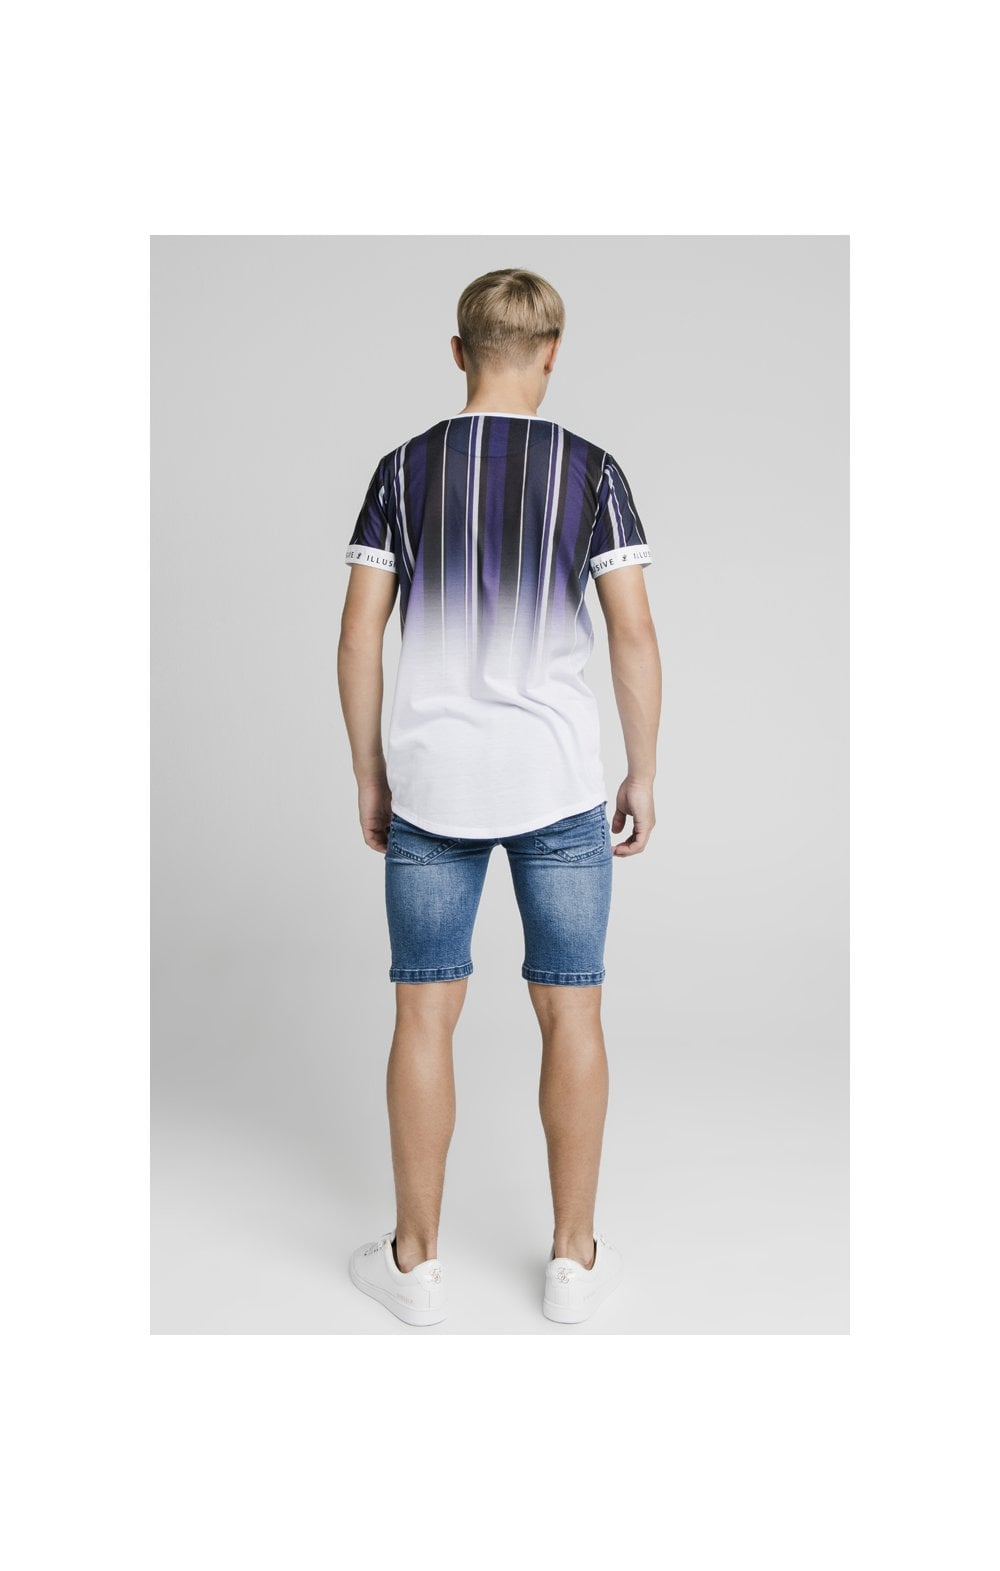 Load image into Gallery viewer, Illusive London Fade Stripe Tech Tee - Navy, Purple, Grey & White (5)